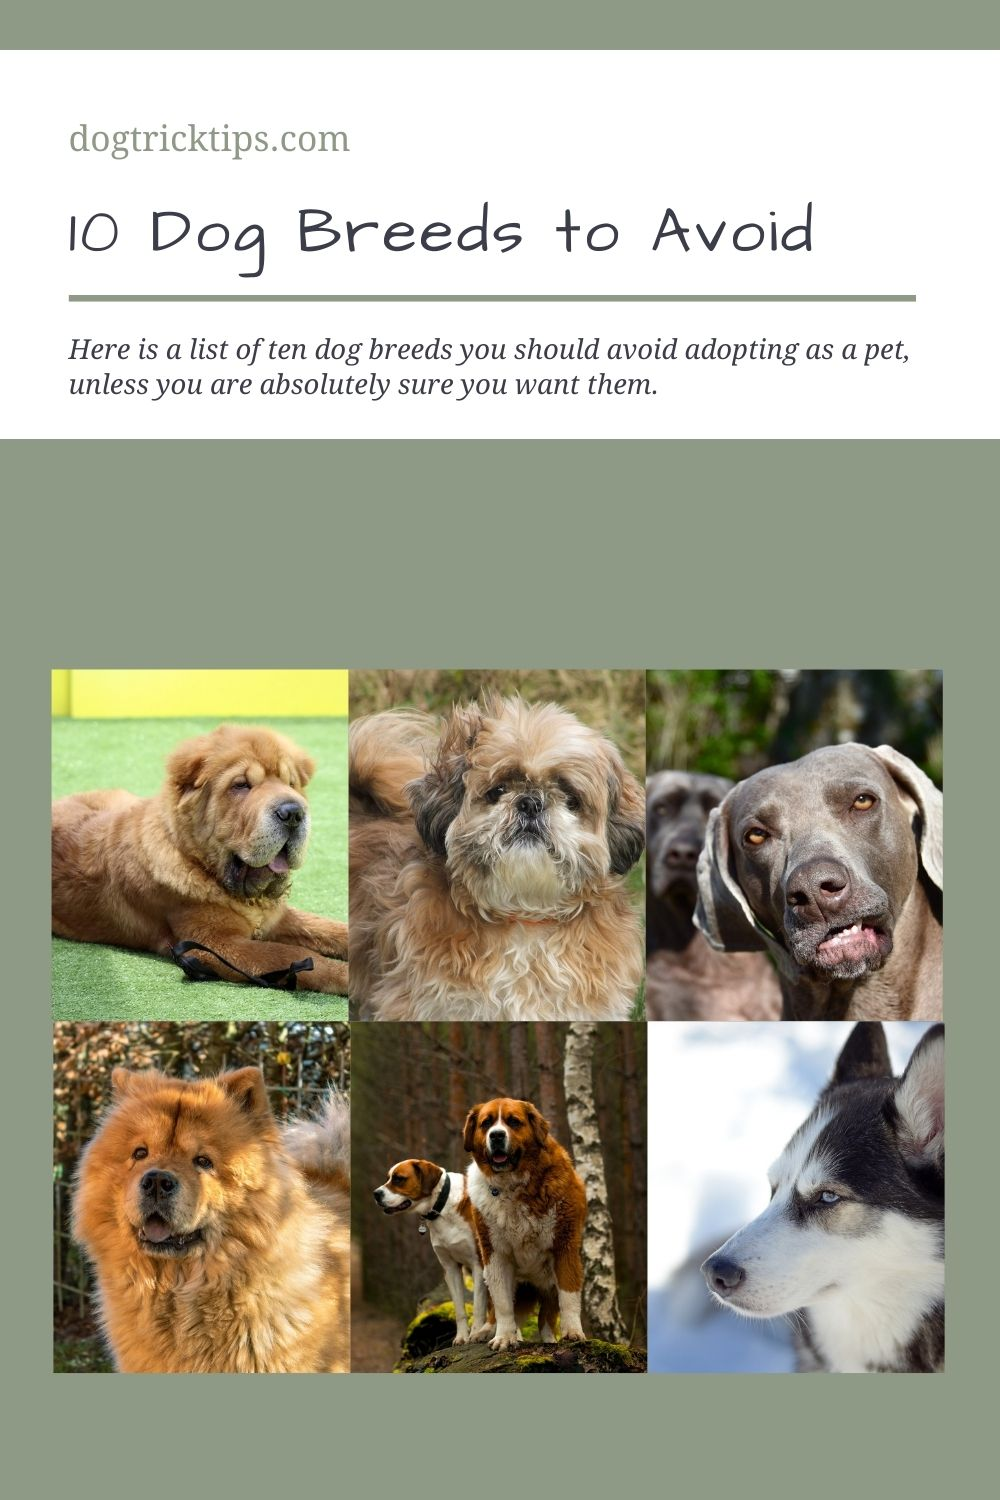 10 Dog Breeds to Avoid At All Costs